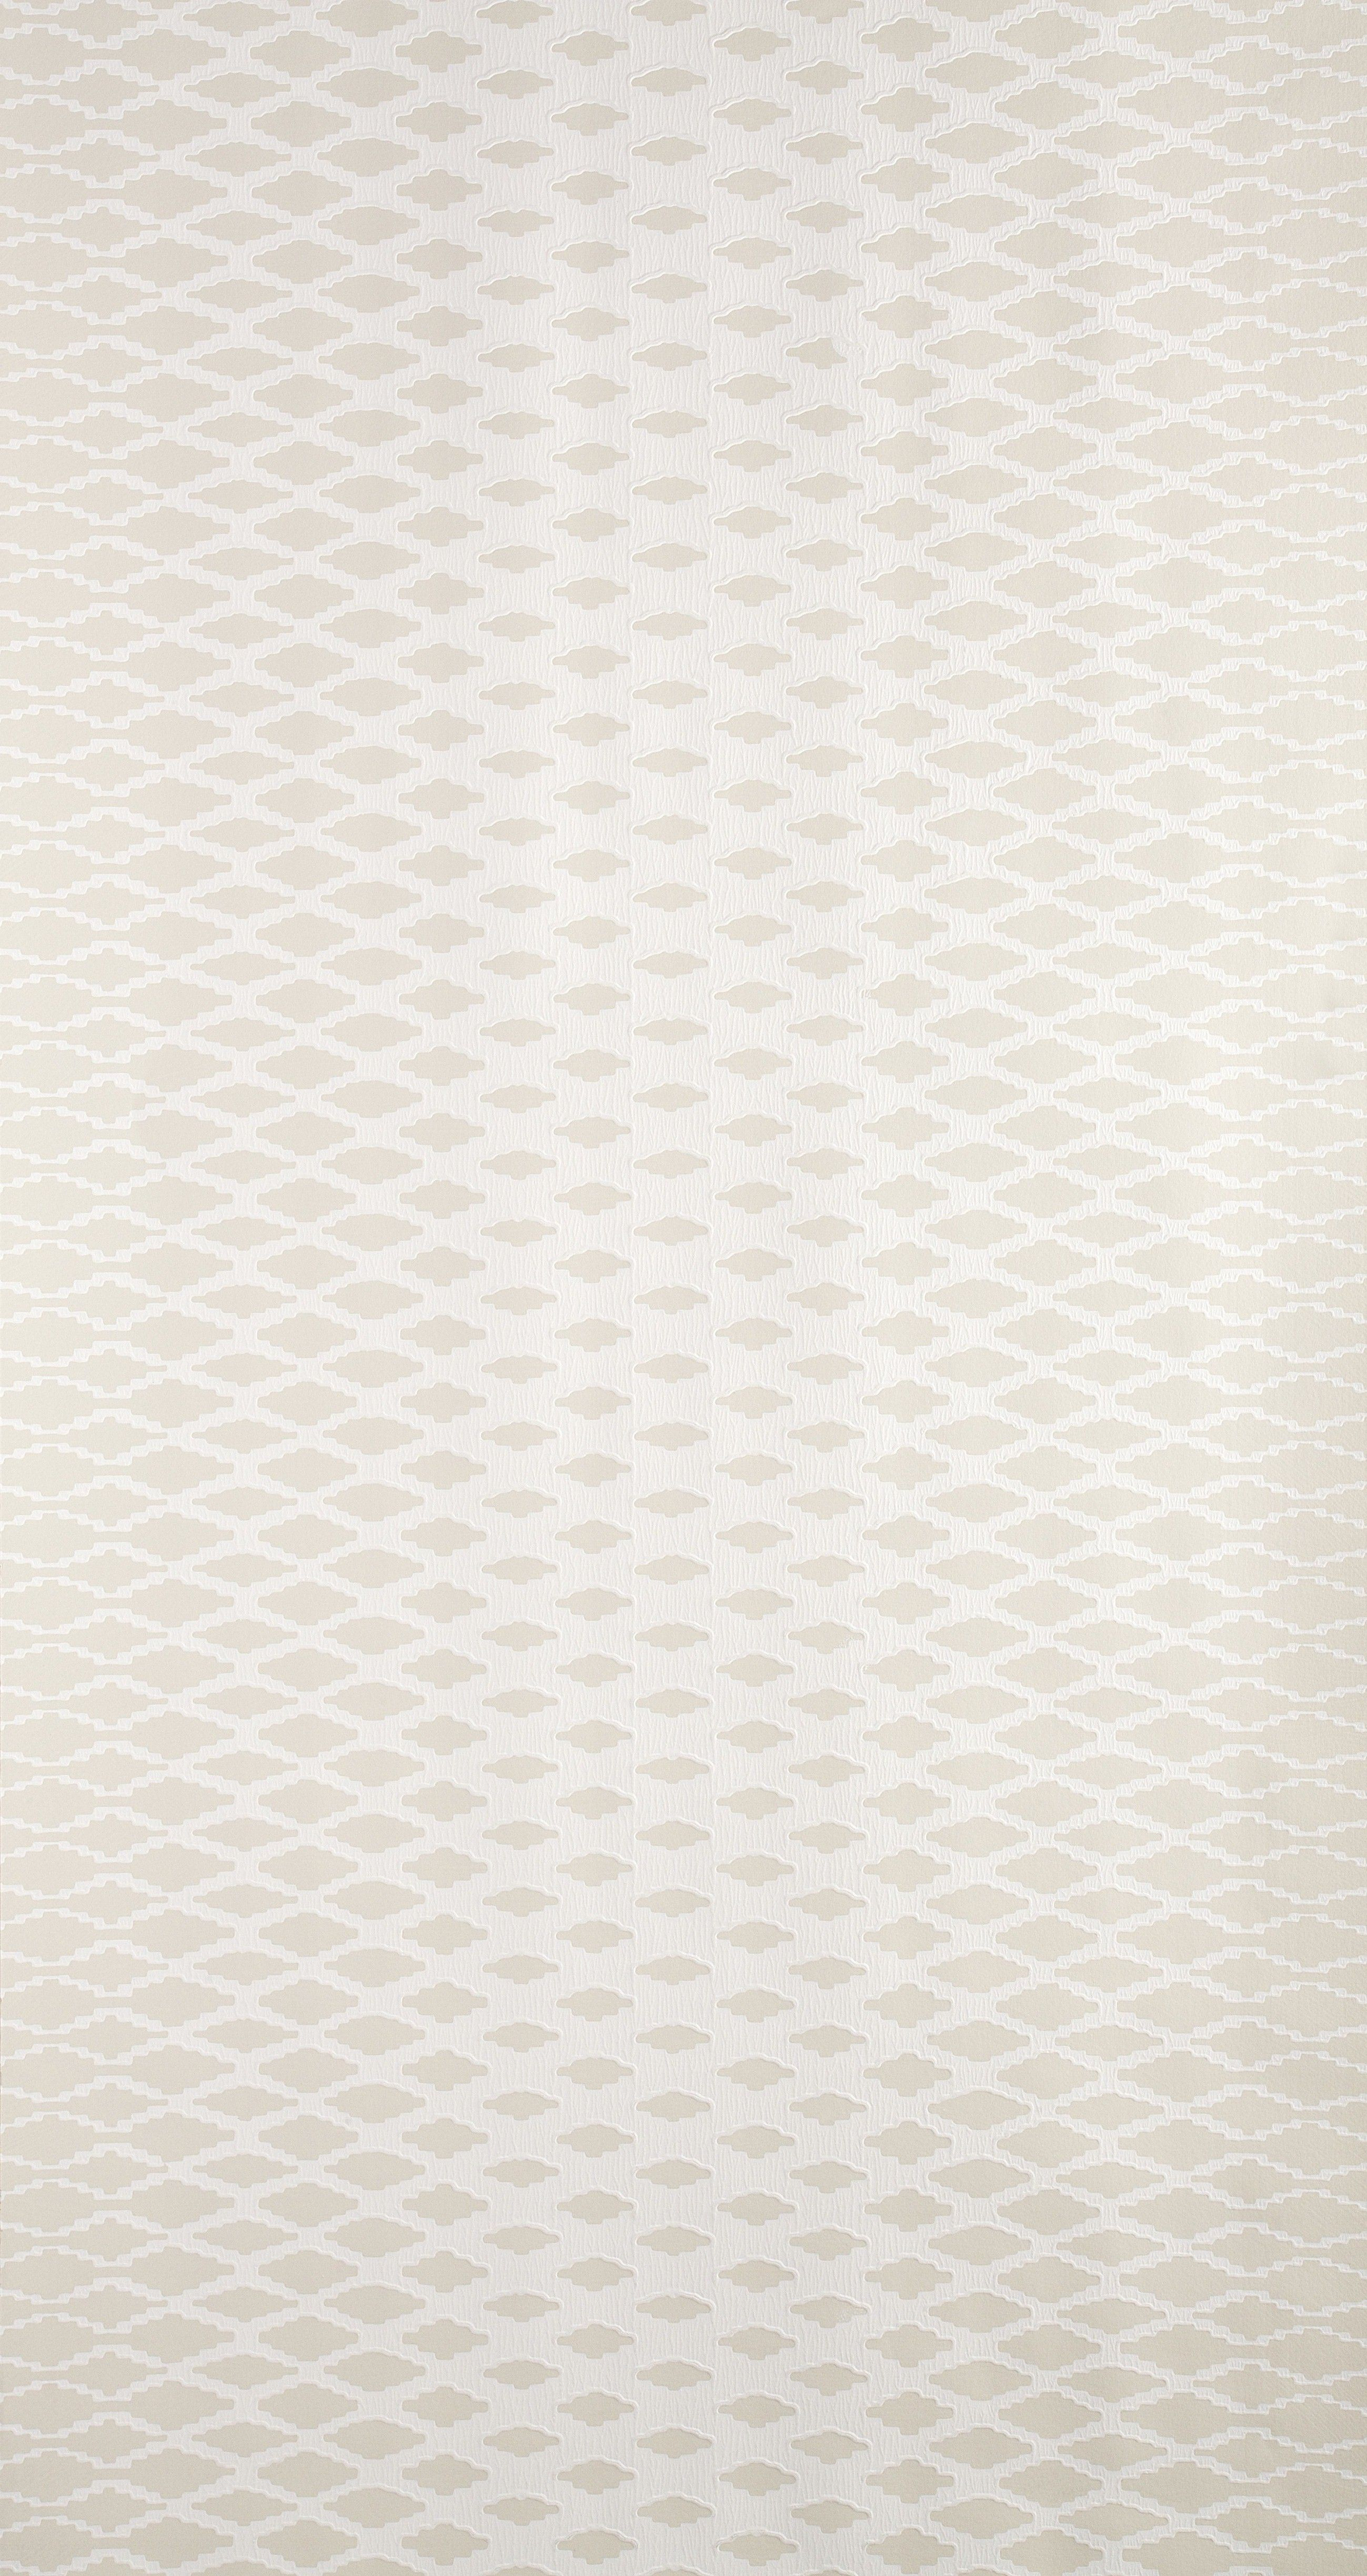 Farrow Ball Lattice Bp 3501 Wallpaper Design Contact Boxwood Interiors Houston Texas For